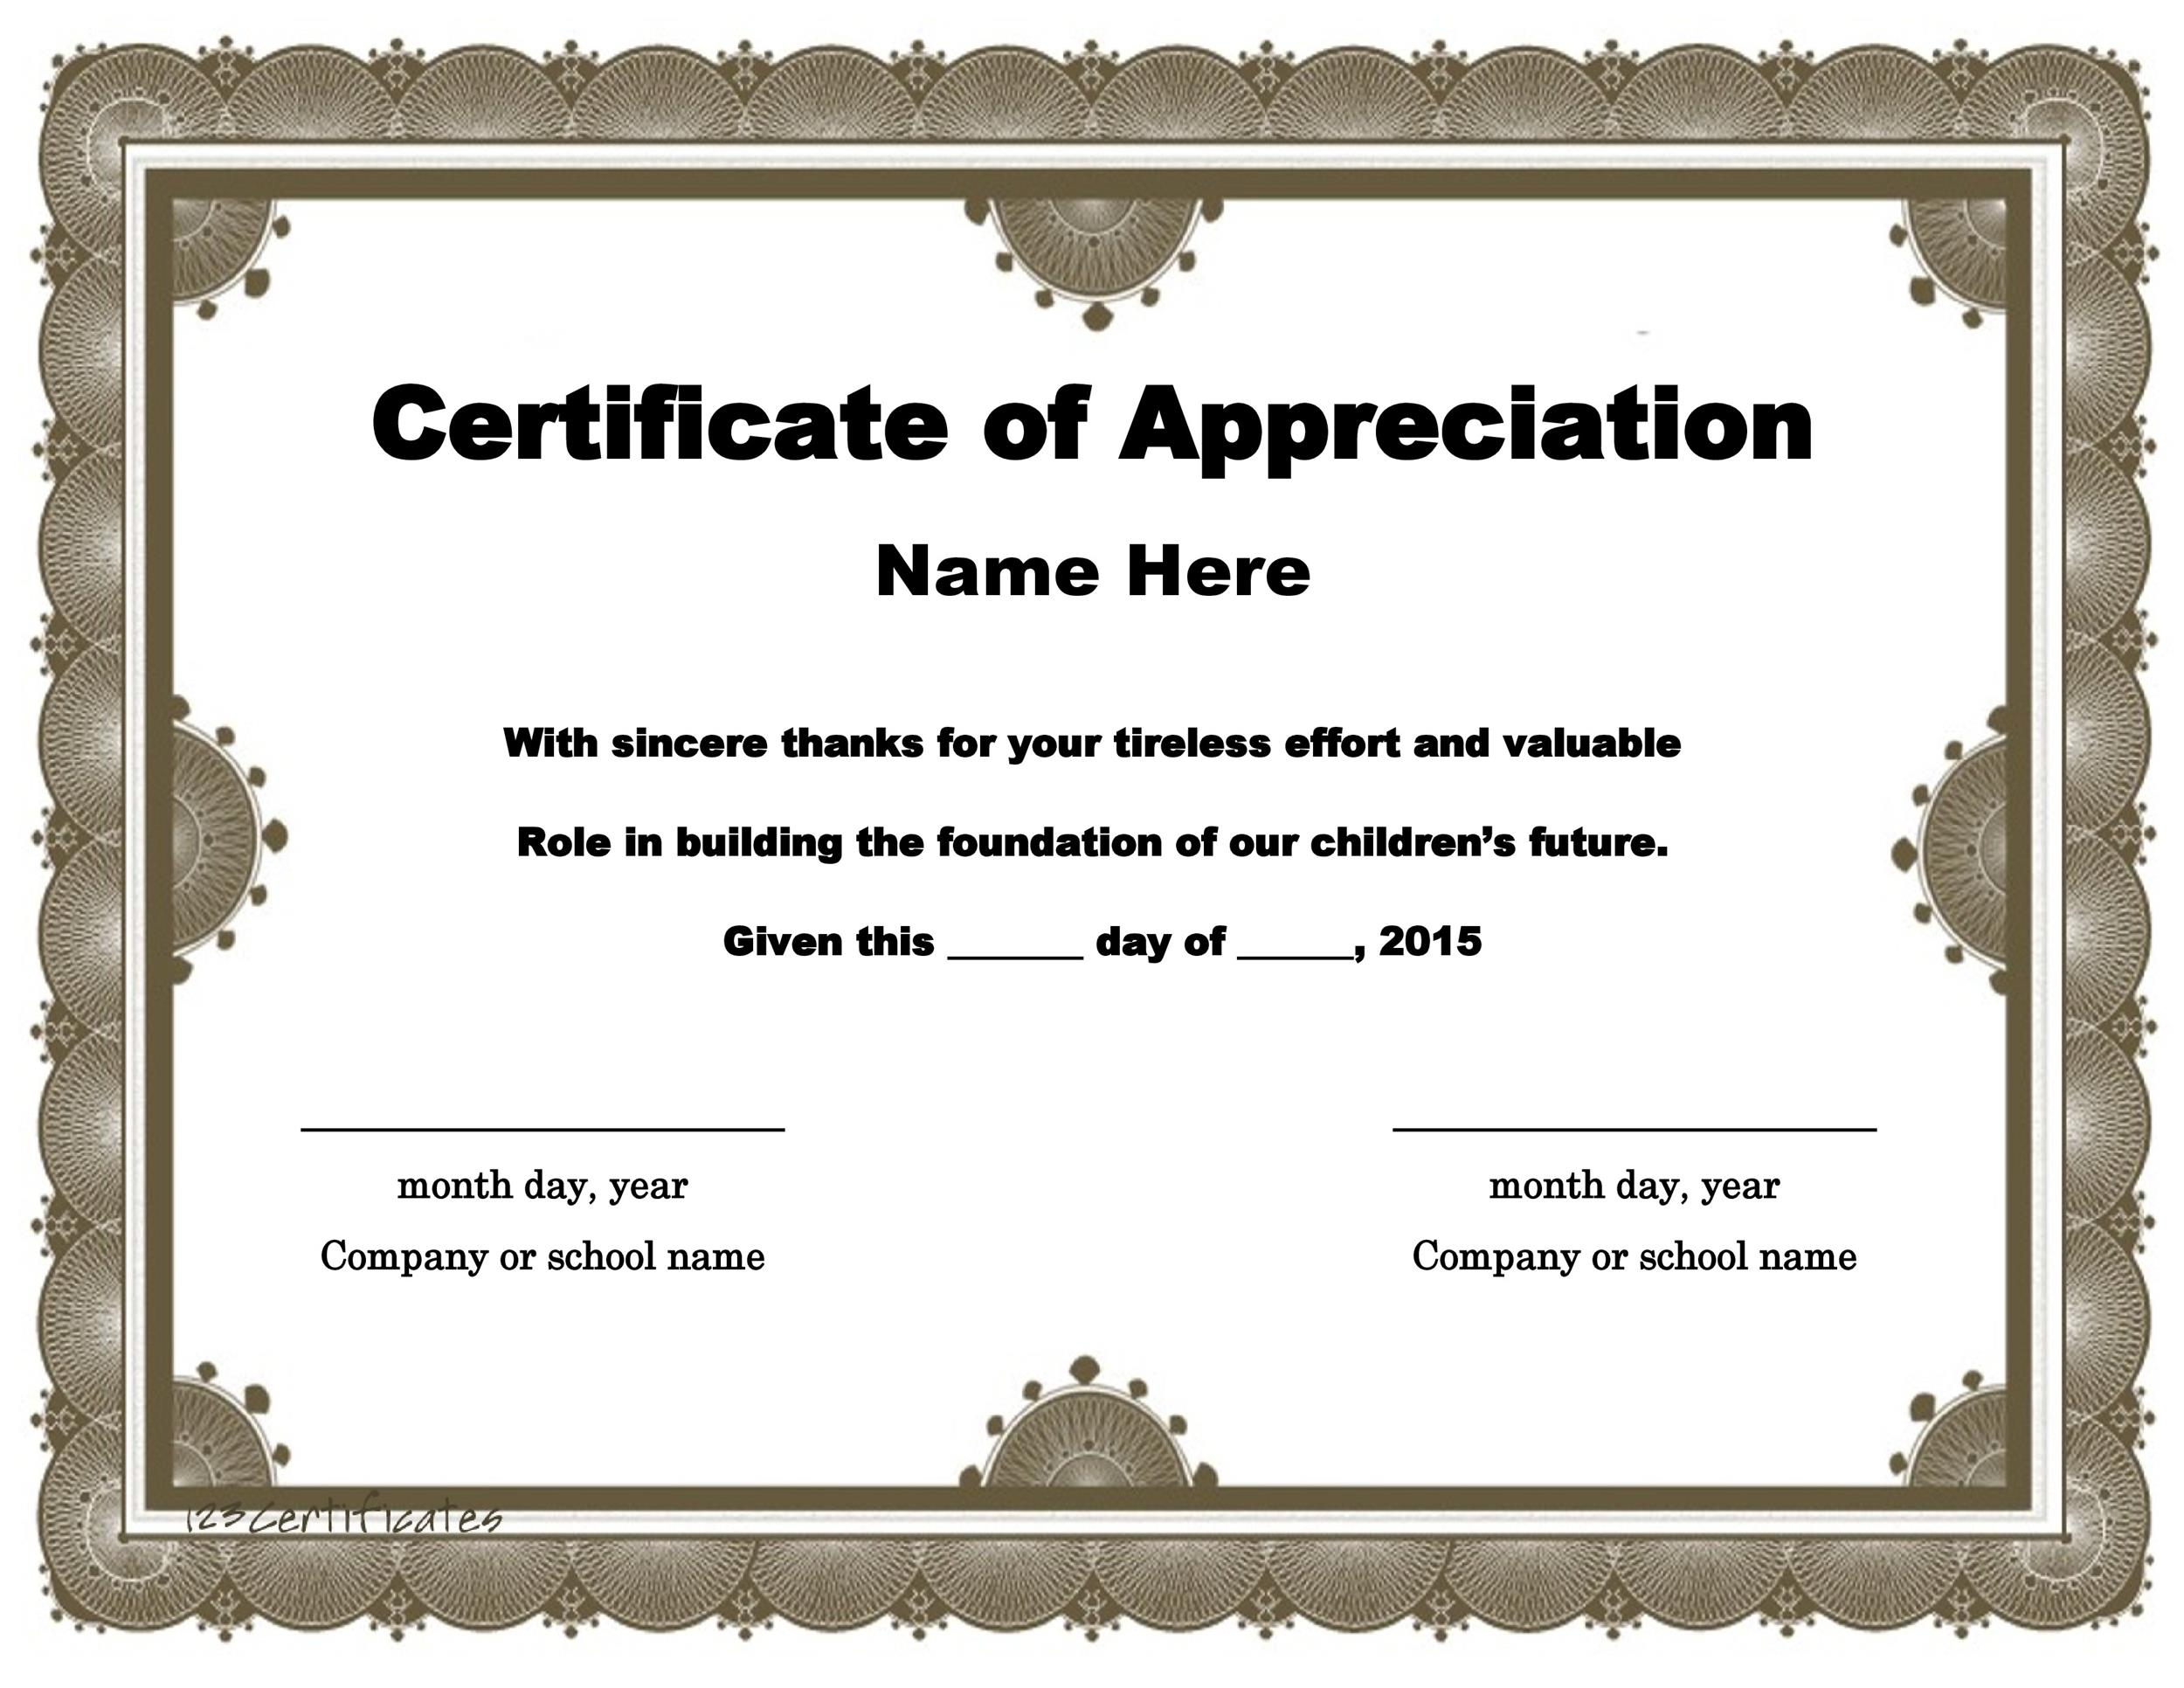 30 Free Certificate of Appreciation Templates and Letters - Free Blank Printable Certificates